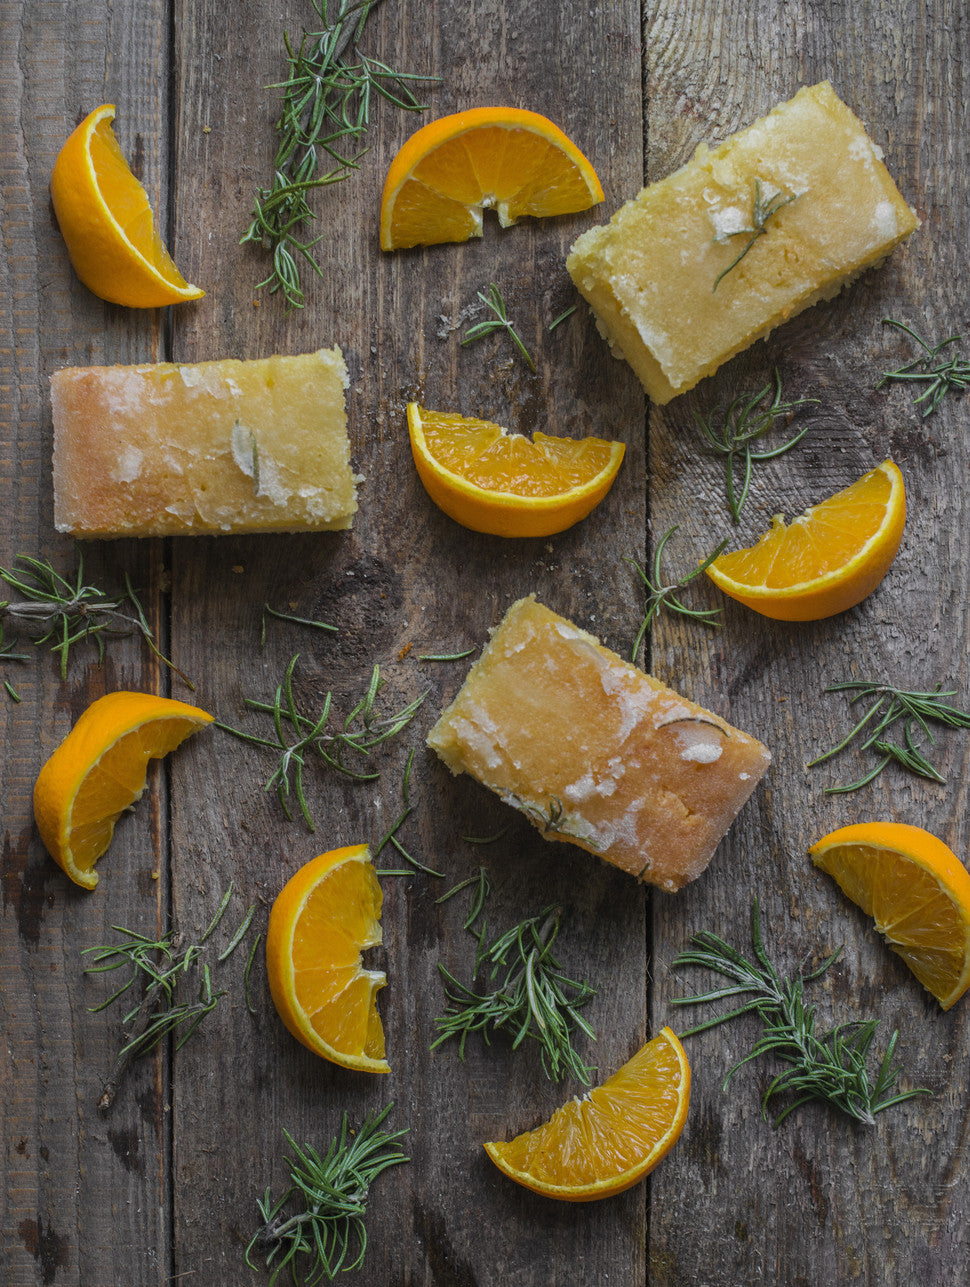 This moist, light as air cake is dripping in a fresh Orange drizzle that has the lightest hint of Rosemary to tickle your tastebuds.